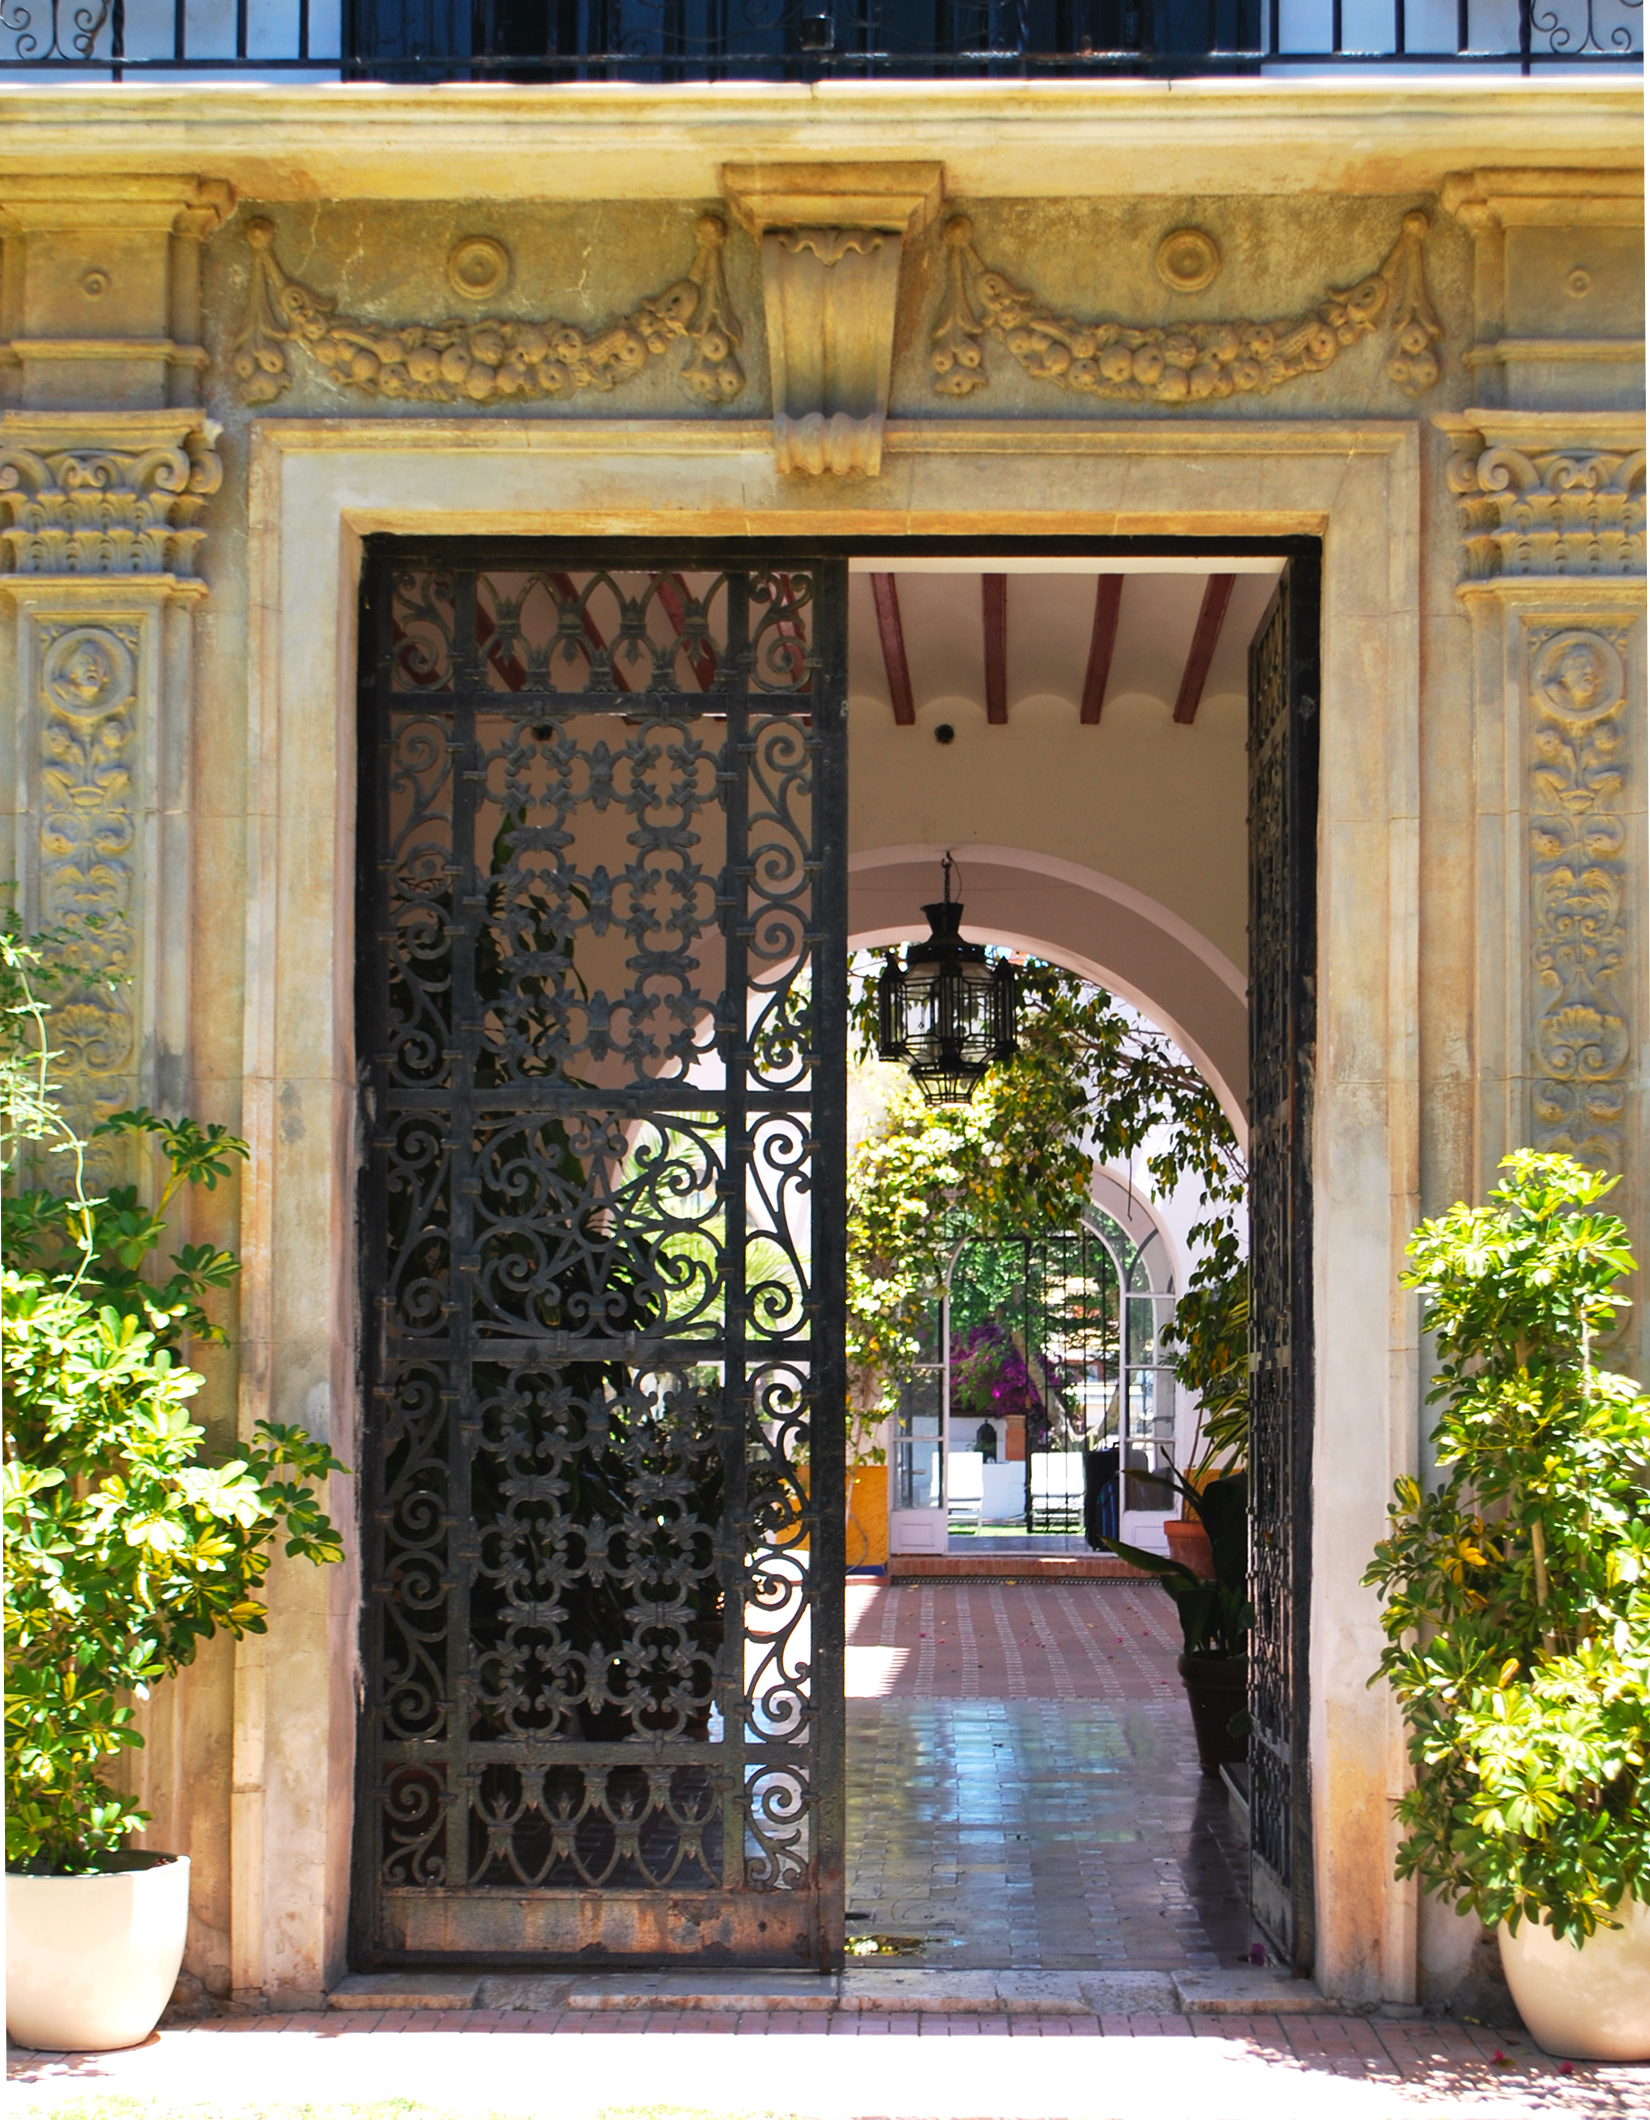 The entrance way with decorative stonework and gates.